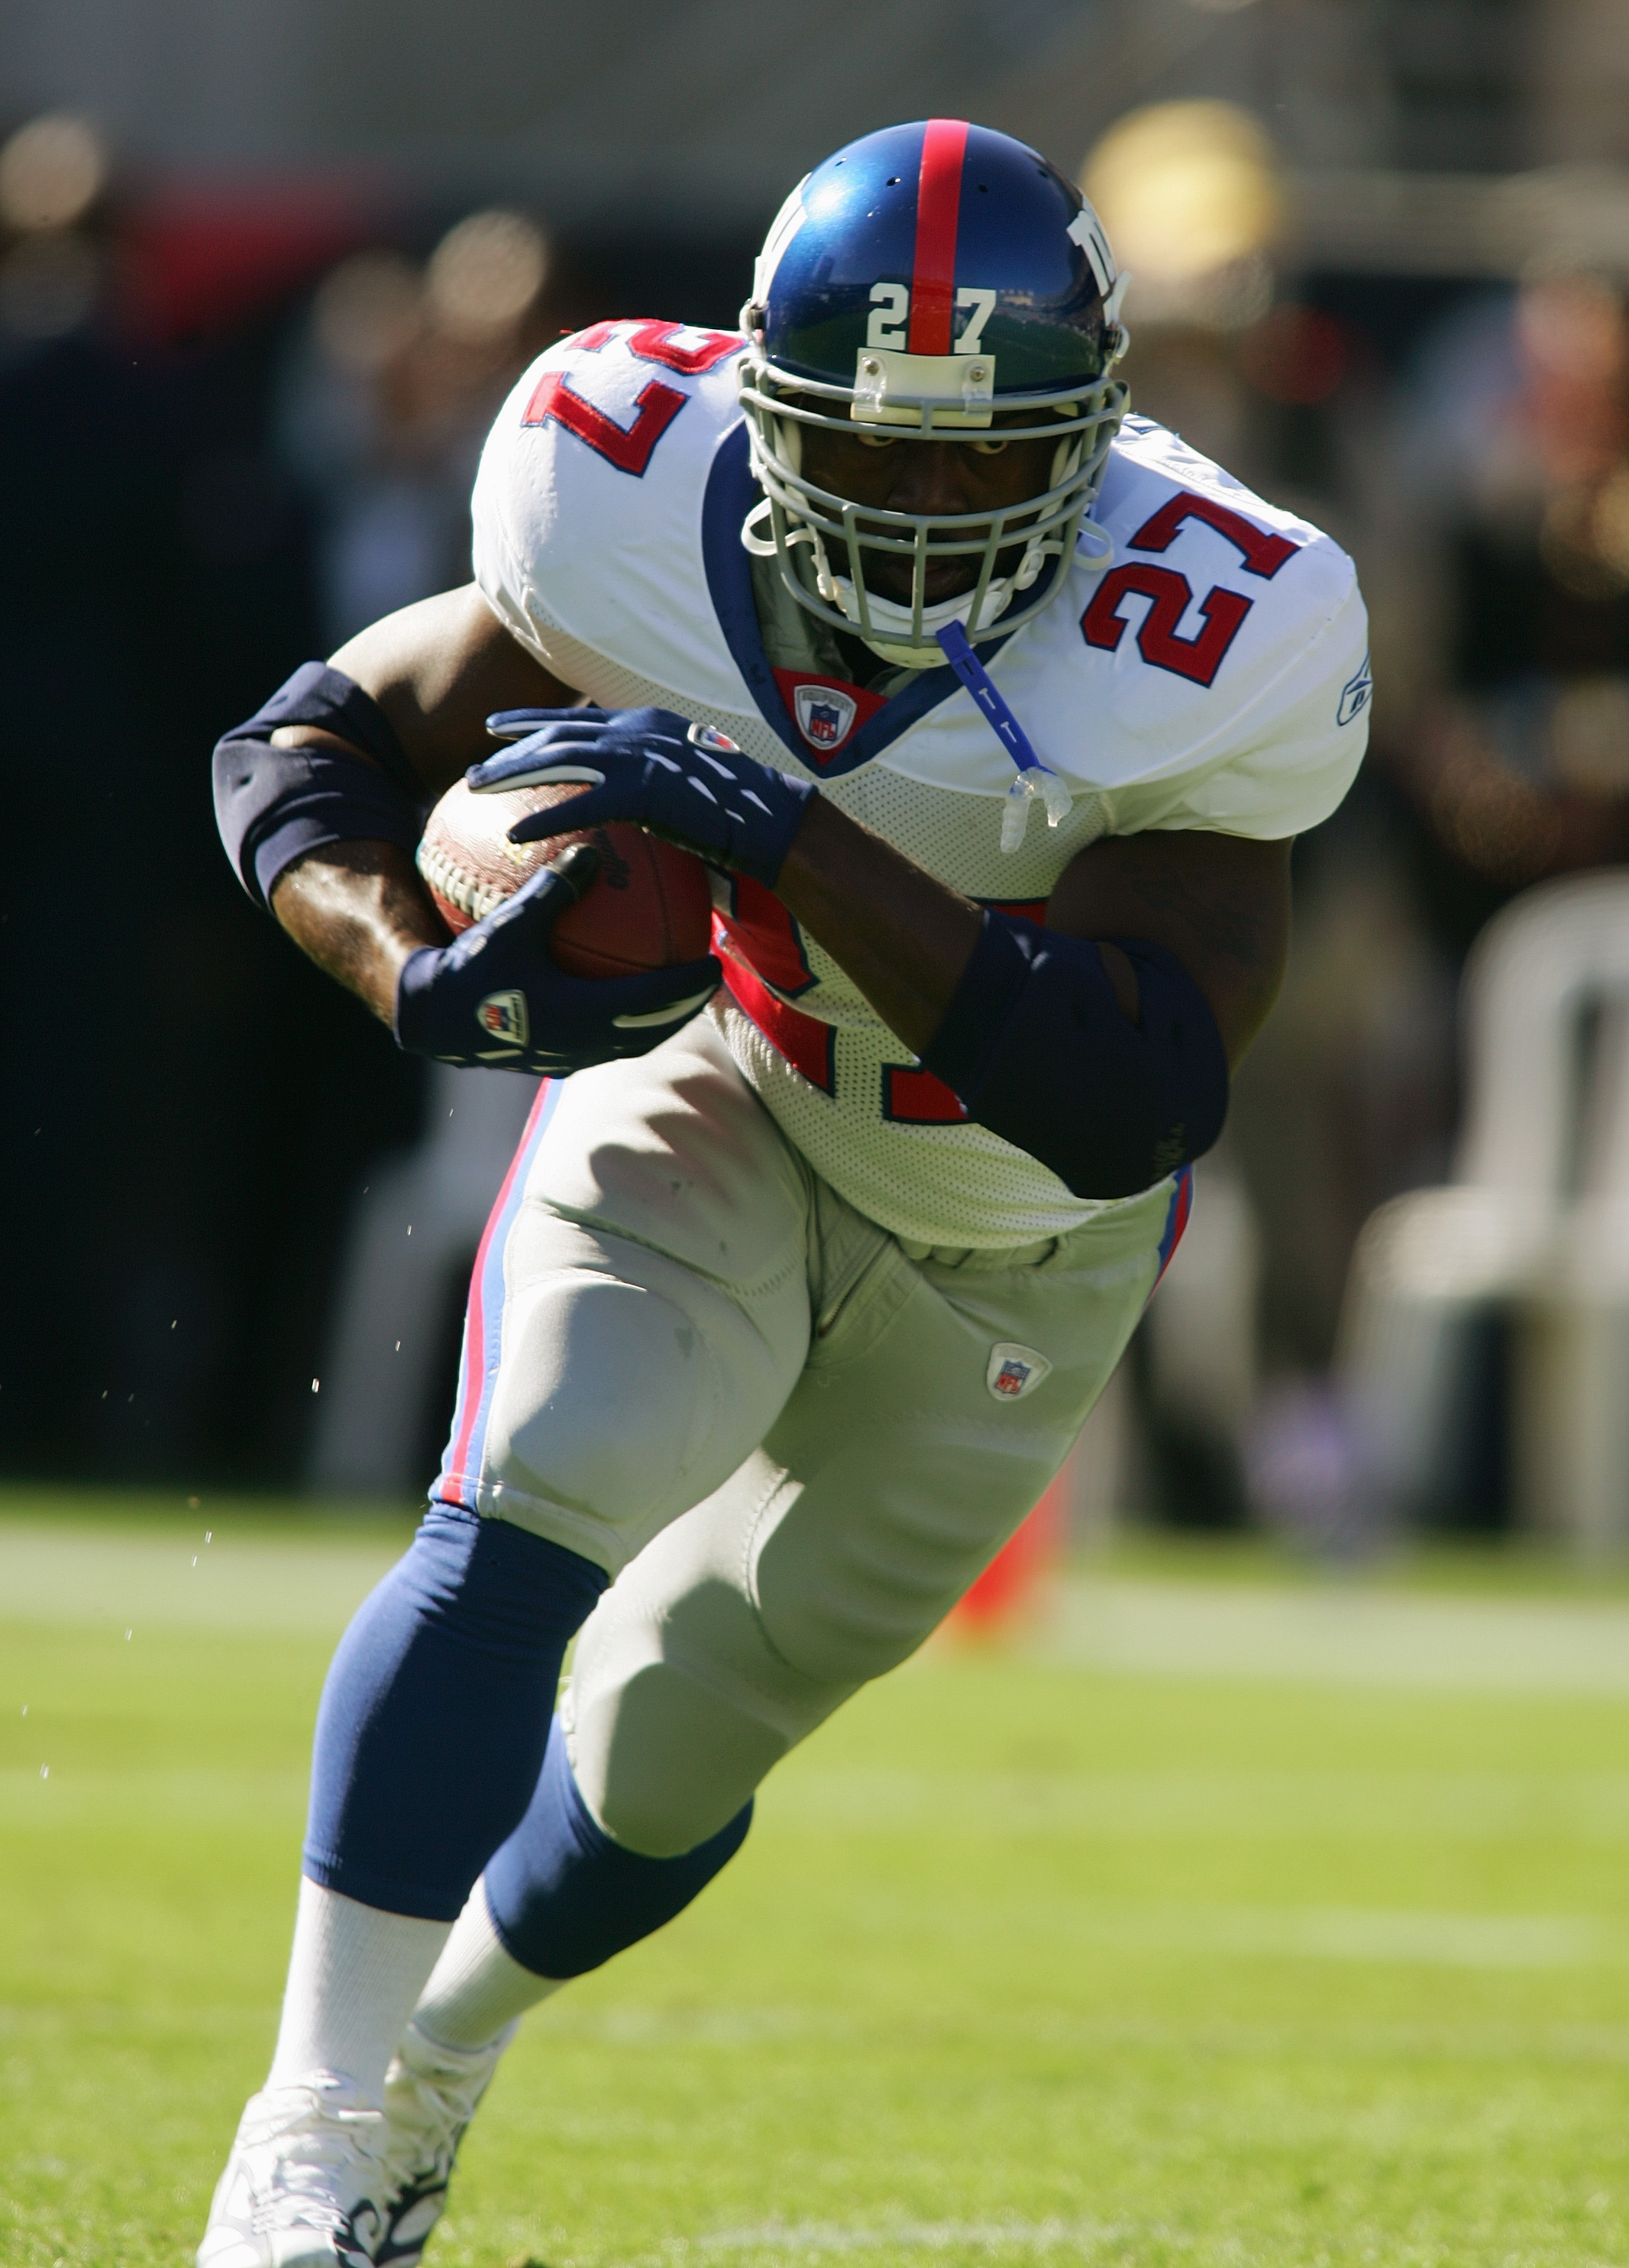 TEMPE, AZ - NOVEMBER 14:  Ron Dayne #27 of the New York Giants runs with the ball before the NFL game against the Arizona Cardinals at Sun Devil Stadium/Frank Kush Field on November 14, 2004 in Tempe, Arizona.  The Cardinals defeated the Giants 17-14.  (P